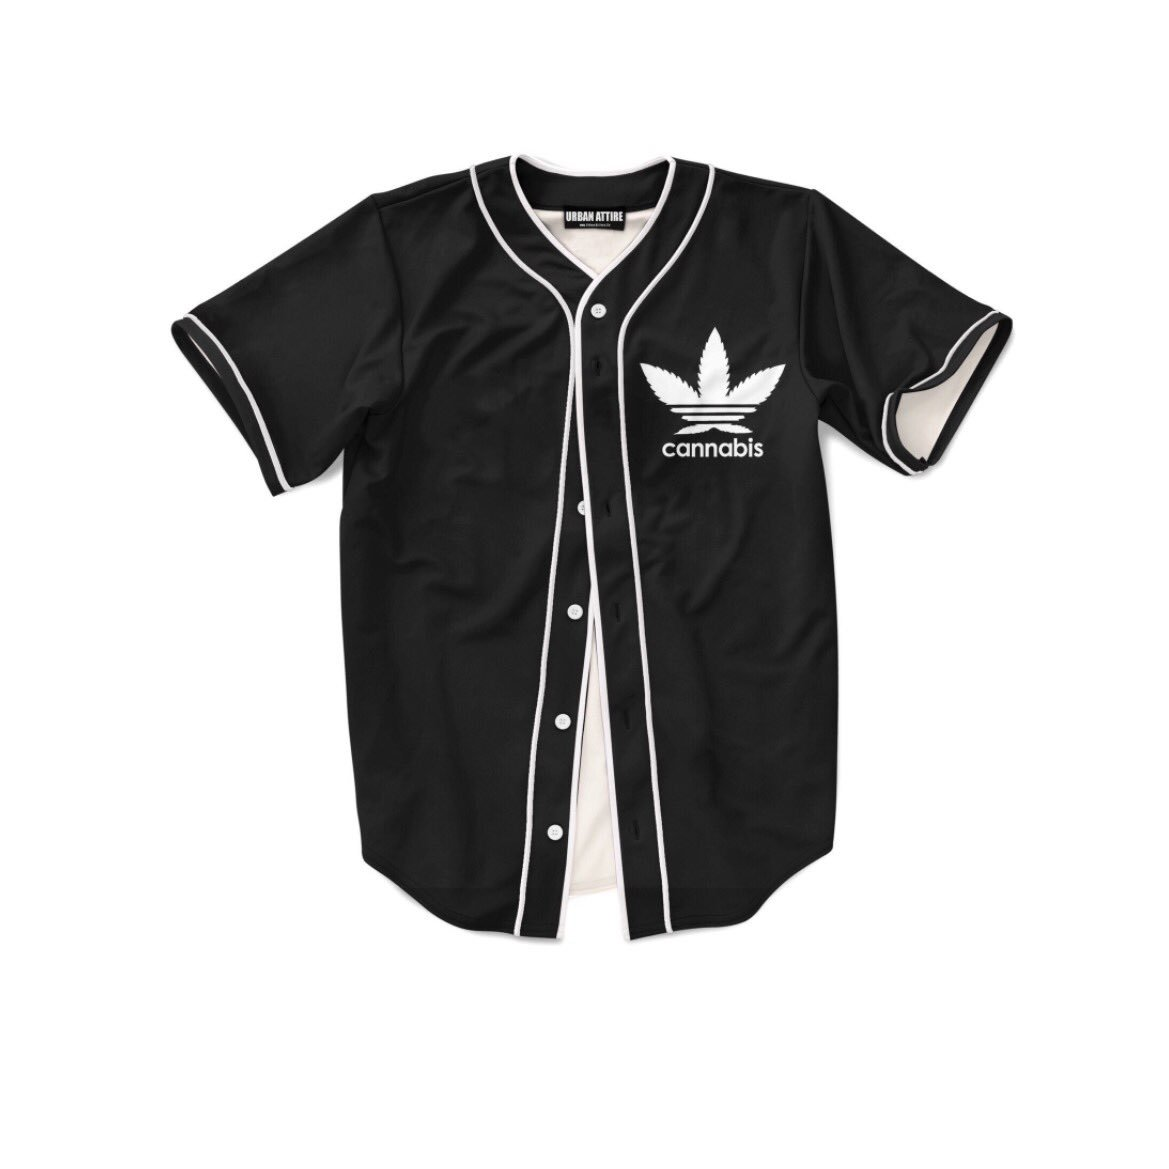 These Jerseys are so fucking Sexy ��  Shop: https://t.co/mzQXmHTEJx  Free Shipping Worldwide �� https://t.co/dRX783SYTx